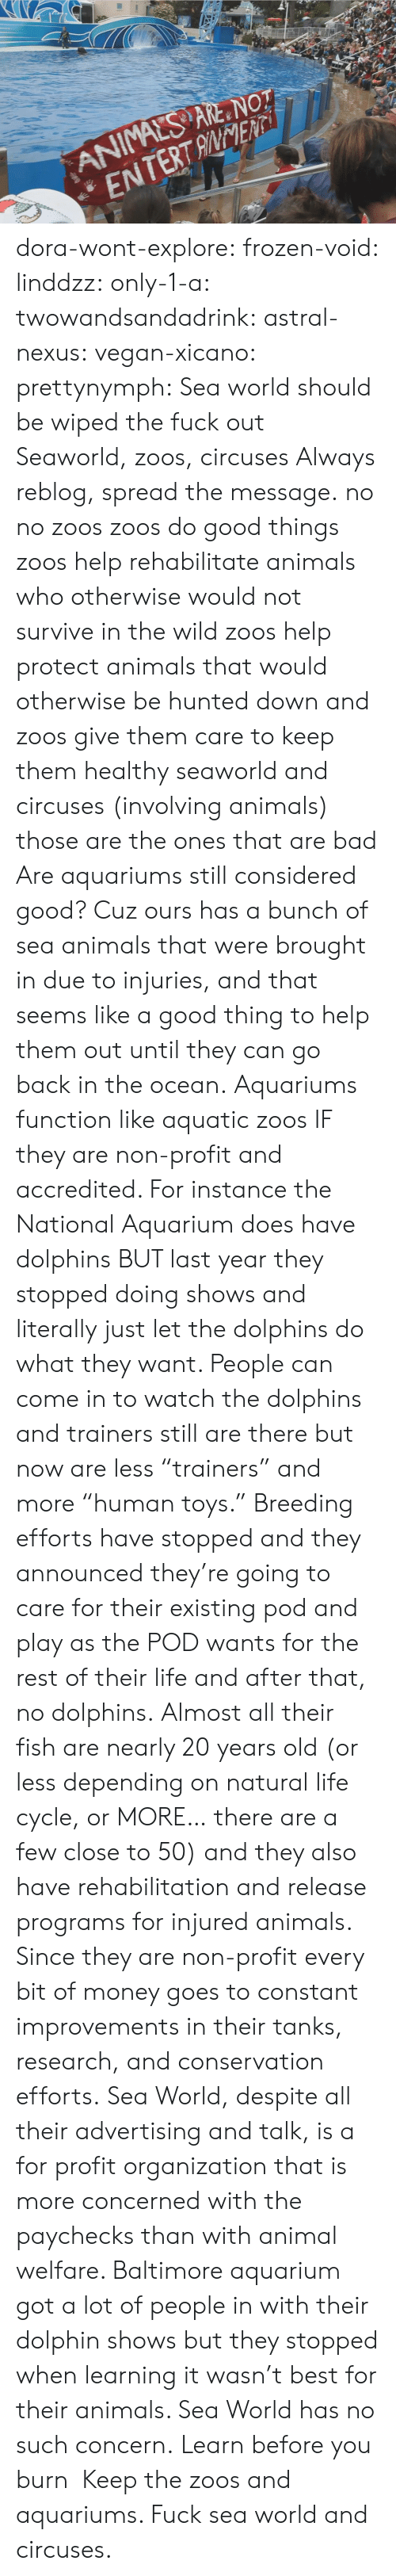 "pod: ANIMALS ARE NOT  ENTERTANENTi dora-wont-explore:   frozen-void:  linddzz:  only-1-a:  twowandsandadrink:  astral-nexus:  vegan-xicano:  prettynymph:  Sea world should be wiped the fuck out  Seaworld, zoos, circuses  Always reblog, spread the message.  no no zoos zoos do good things zoos help rehabilitate animals who otherwise would not survive in the wild zoos help protect animals that would otherwise be hunted down and zoos give them care to keep them healthy seaworld and circuses (involving animals) those are the ones that are bad  Are aquariums still considered good? Cuz ours has a bunch of sea animals that were brought in due to injuries, and that seems like a good thing to help them out until they can go back in the ocean.  Aquariums function like aquatic zoos IF they are non-profit and accredited. For instance the National Aquarium does have dolphins BUT last year they stopped doing shows and literally just let the dolphins do what they want. People can come in to watch the dolphins and trainers still are there but now are less ""trainers"" and more ""human toys."" Breeding efforts have stopped and they announced they're going to care for their existing pod and play as the POD wants for the rest of their life and after that, no dolphins. Almost all their fish are nearly 20 years old (or less depending on natural life cycle, or MORE… there are a few close to 50) and they also have rehabilitation and release programs for injured animals. Since they are non-profit every bit of money goes to constant improvements in their tanks, research, and conservation efforts. Sea World, despite all their advertising and talk, is a for profit organization that is more concerned with the paychecks than with animal welfare. Baltimore aquarium got a lot of people in with their dolphin shows but they stopped when learning it wasn't best for their animals. Sea World has no such concern.  Learn before you burn   Keep the zoos and aquariums. Fuck sea world and circuses."